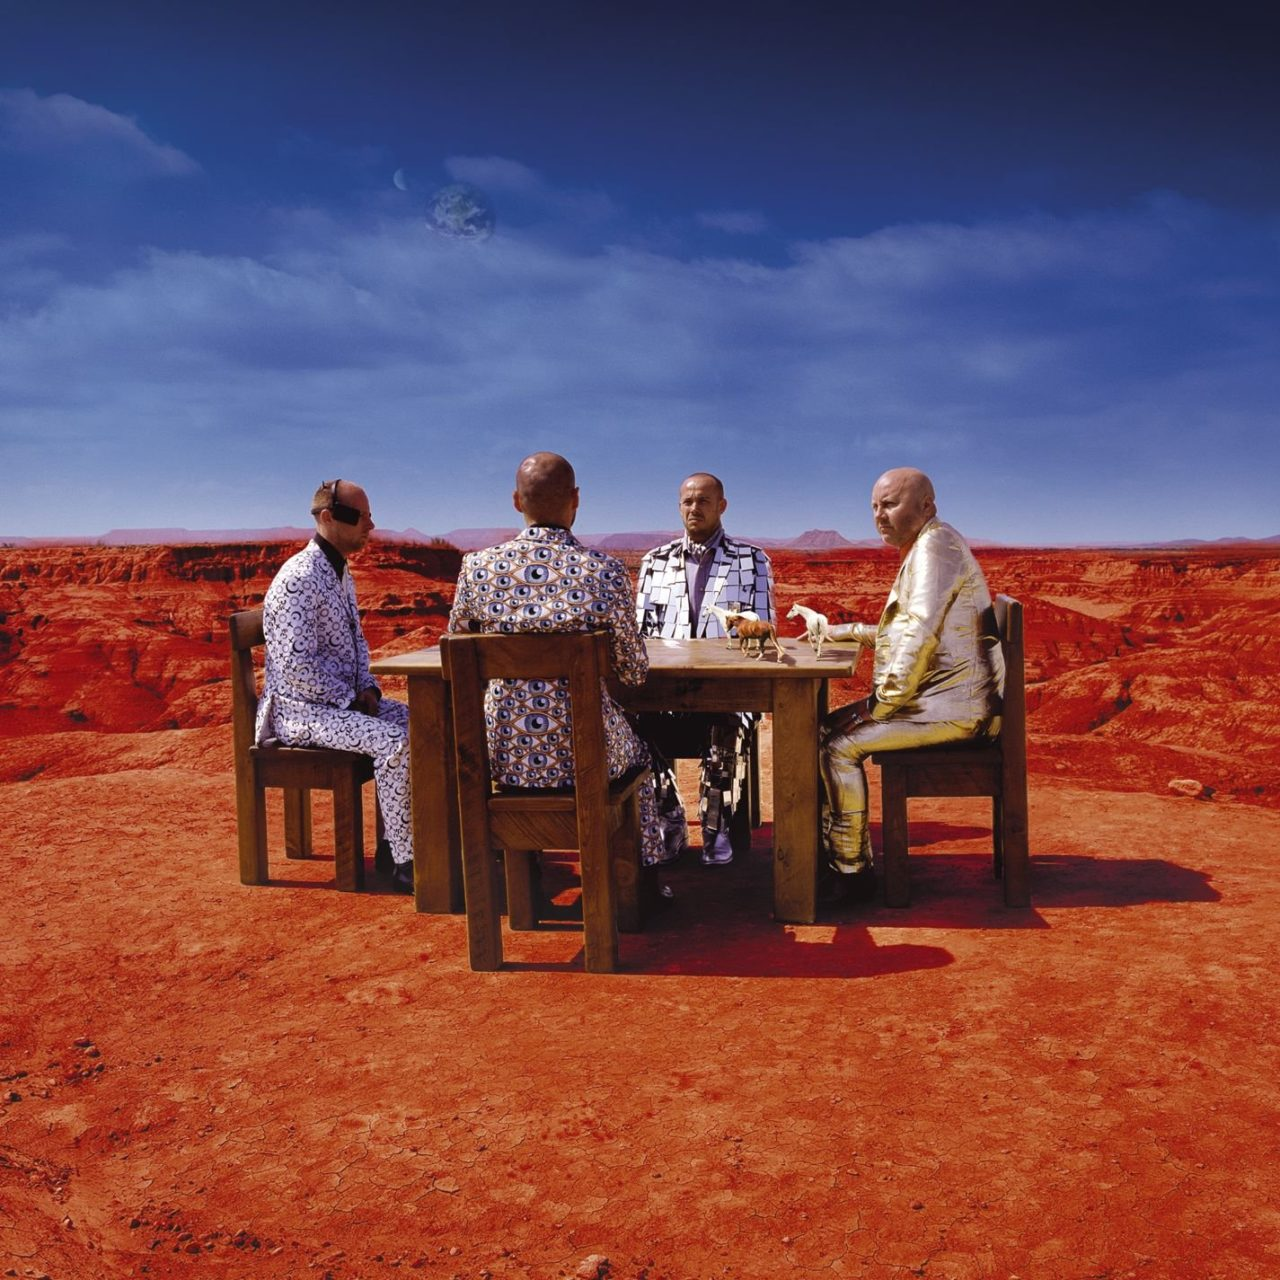 Muse-Black Holes And Revelations LP